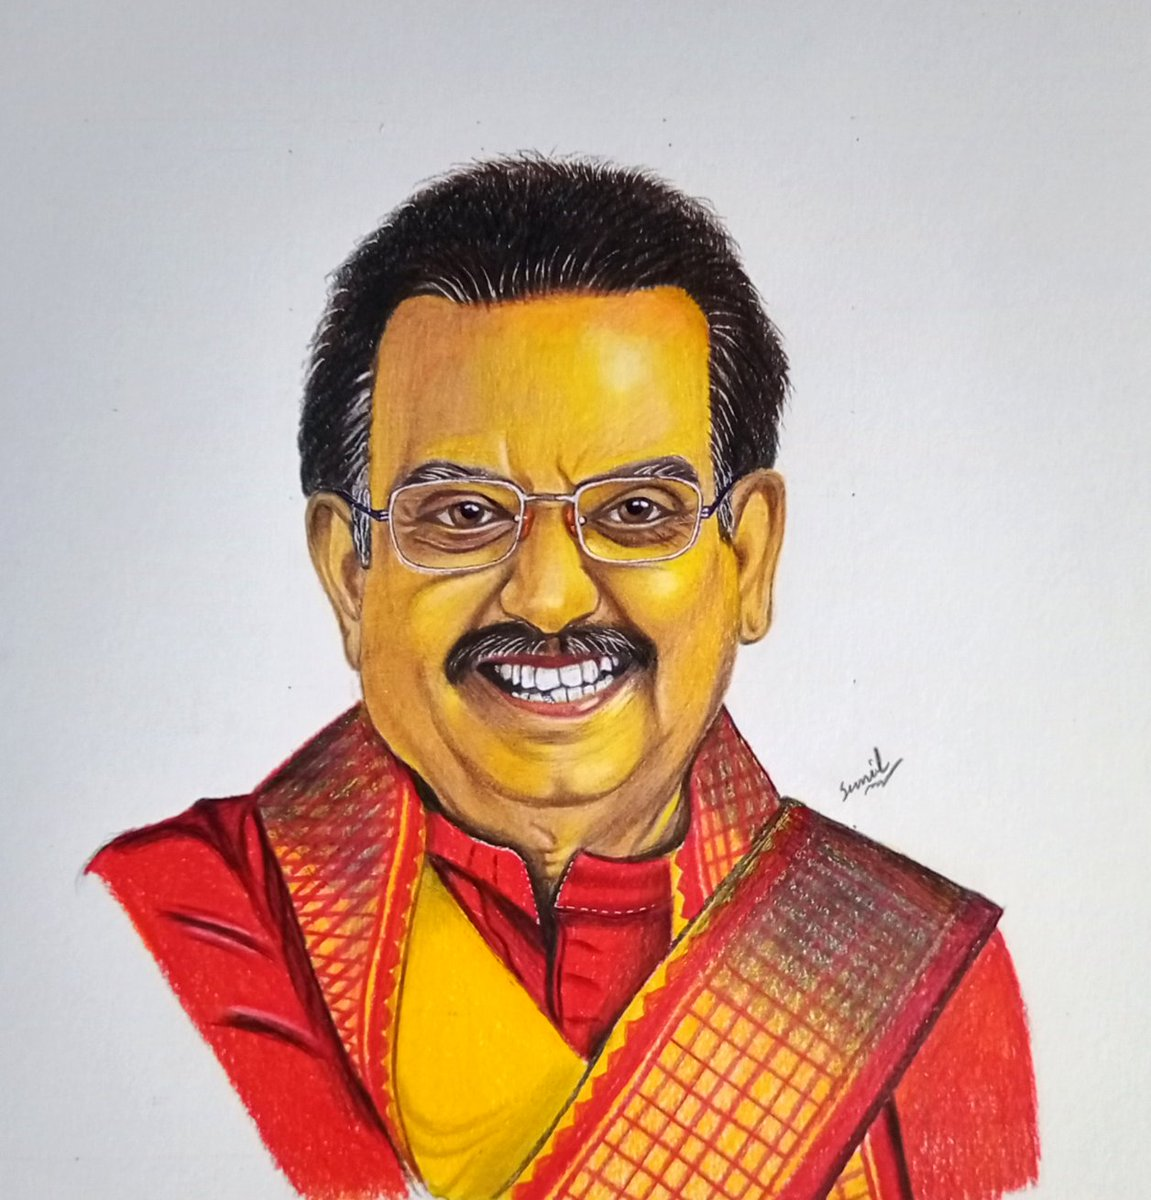 S P Balasubramanyam The legendery singer May your soul rest in peace 🙏🙏🙏 A small tribute to him Check out the drawing video https://t.co/qKBDekMpkd #sbp #SPBalasubrahmanyam https://t.co/O1qUiDQODO